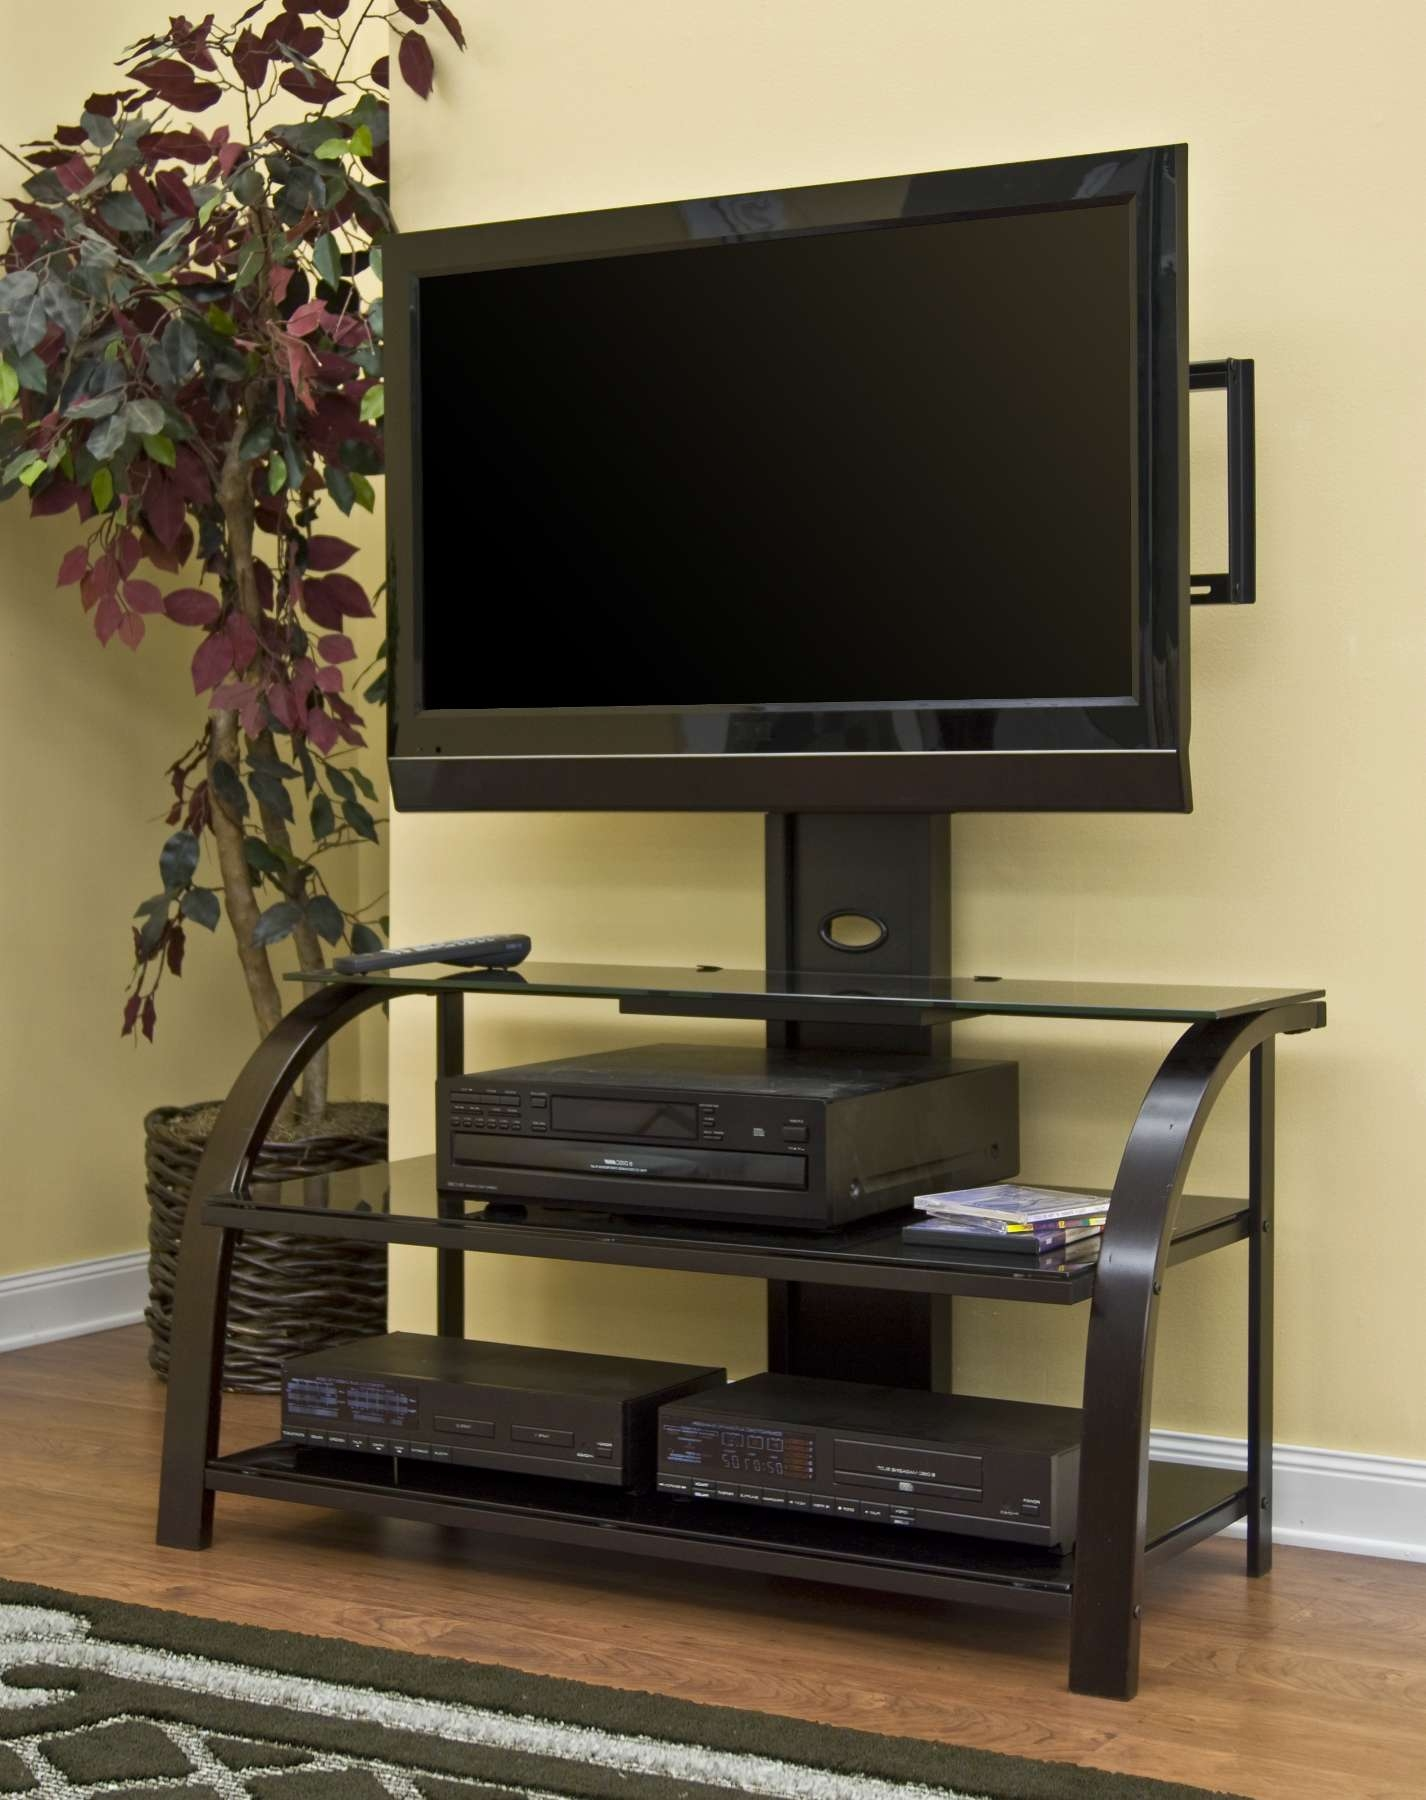 Furnitures : Tv Stand With Mount Inch Furniture The Living Room Intended For Denver Tv Stands (View 4 of 15)